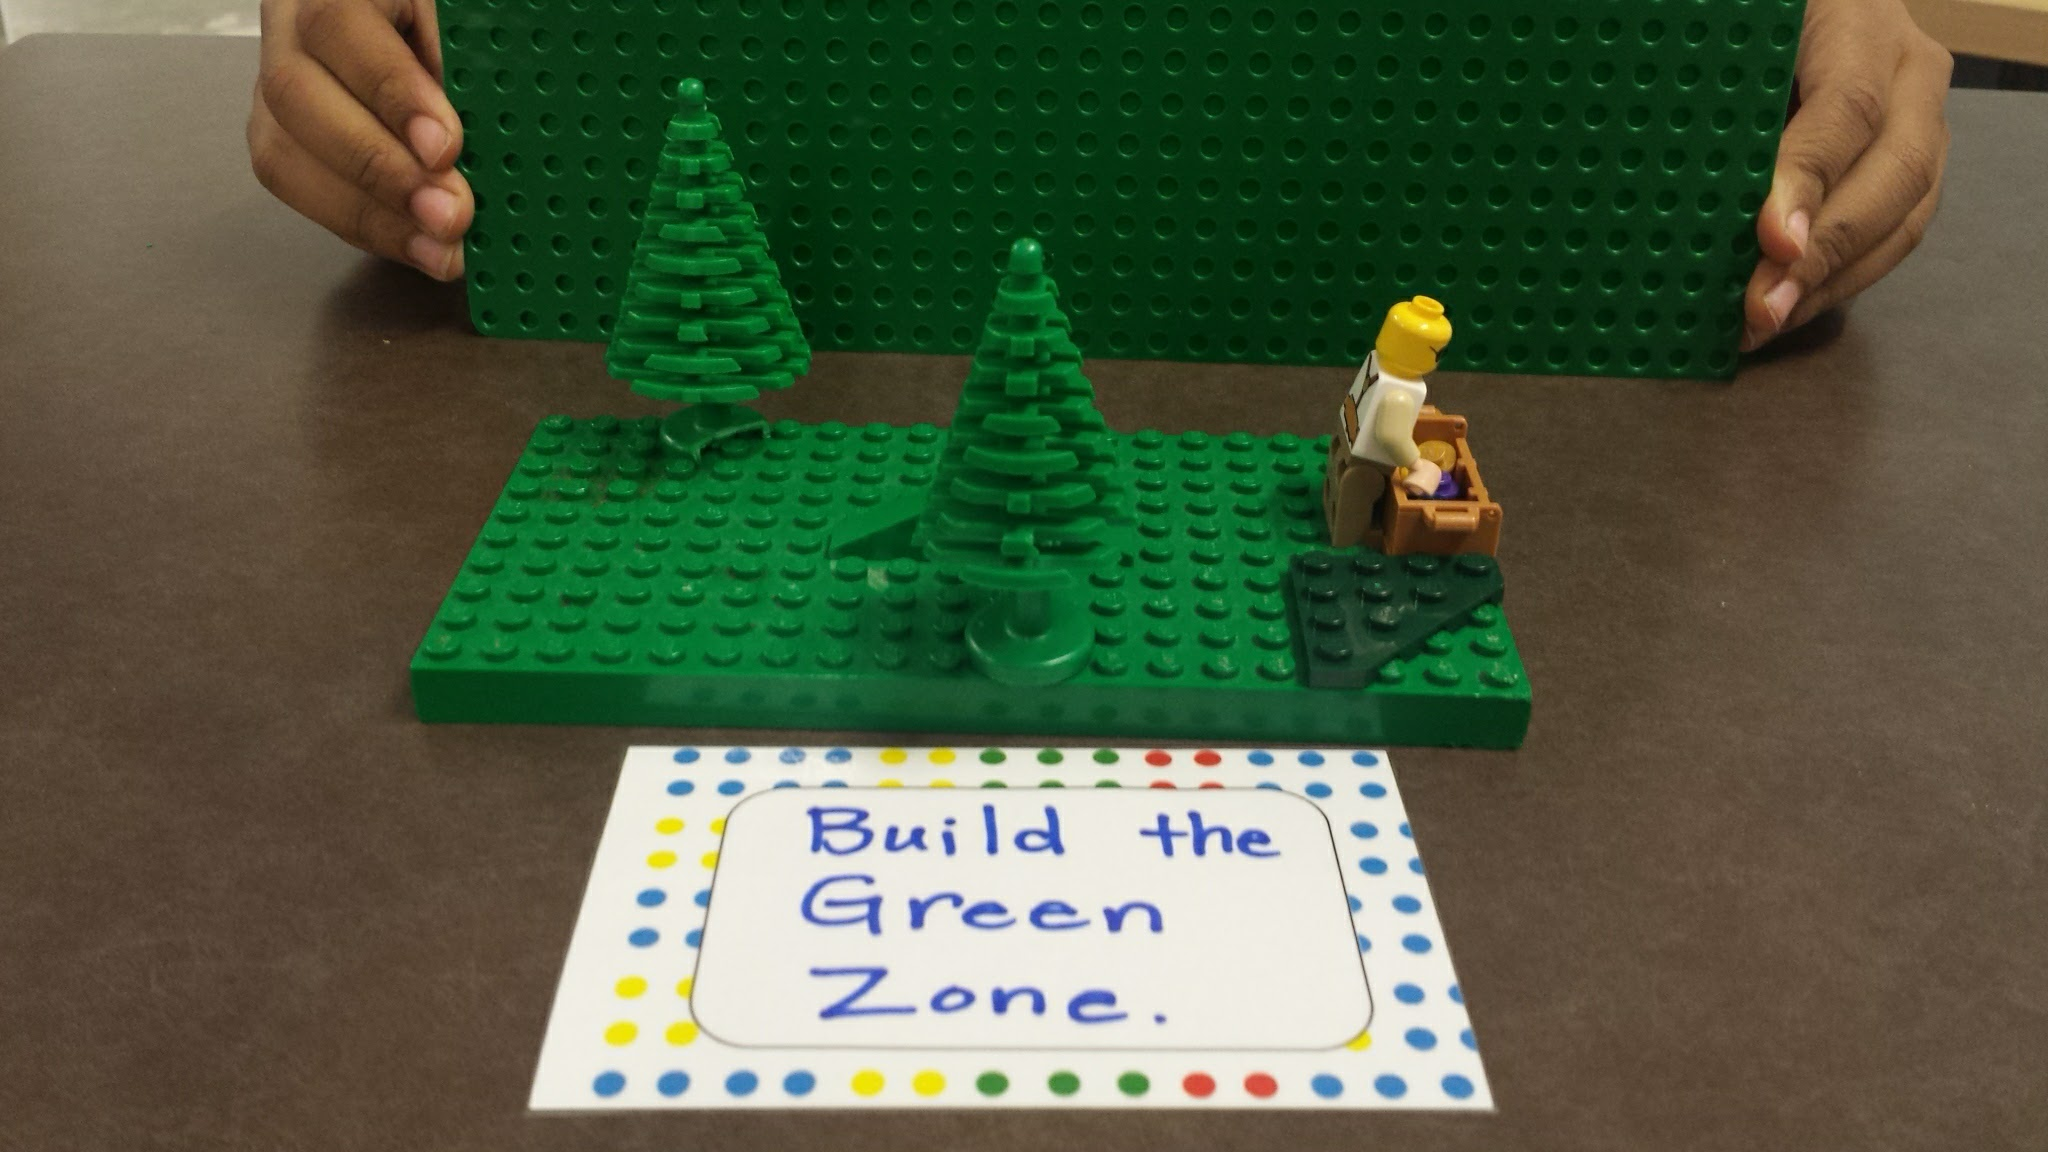 The Green Zone